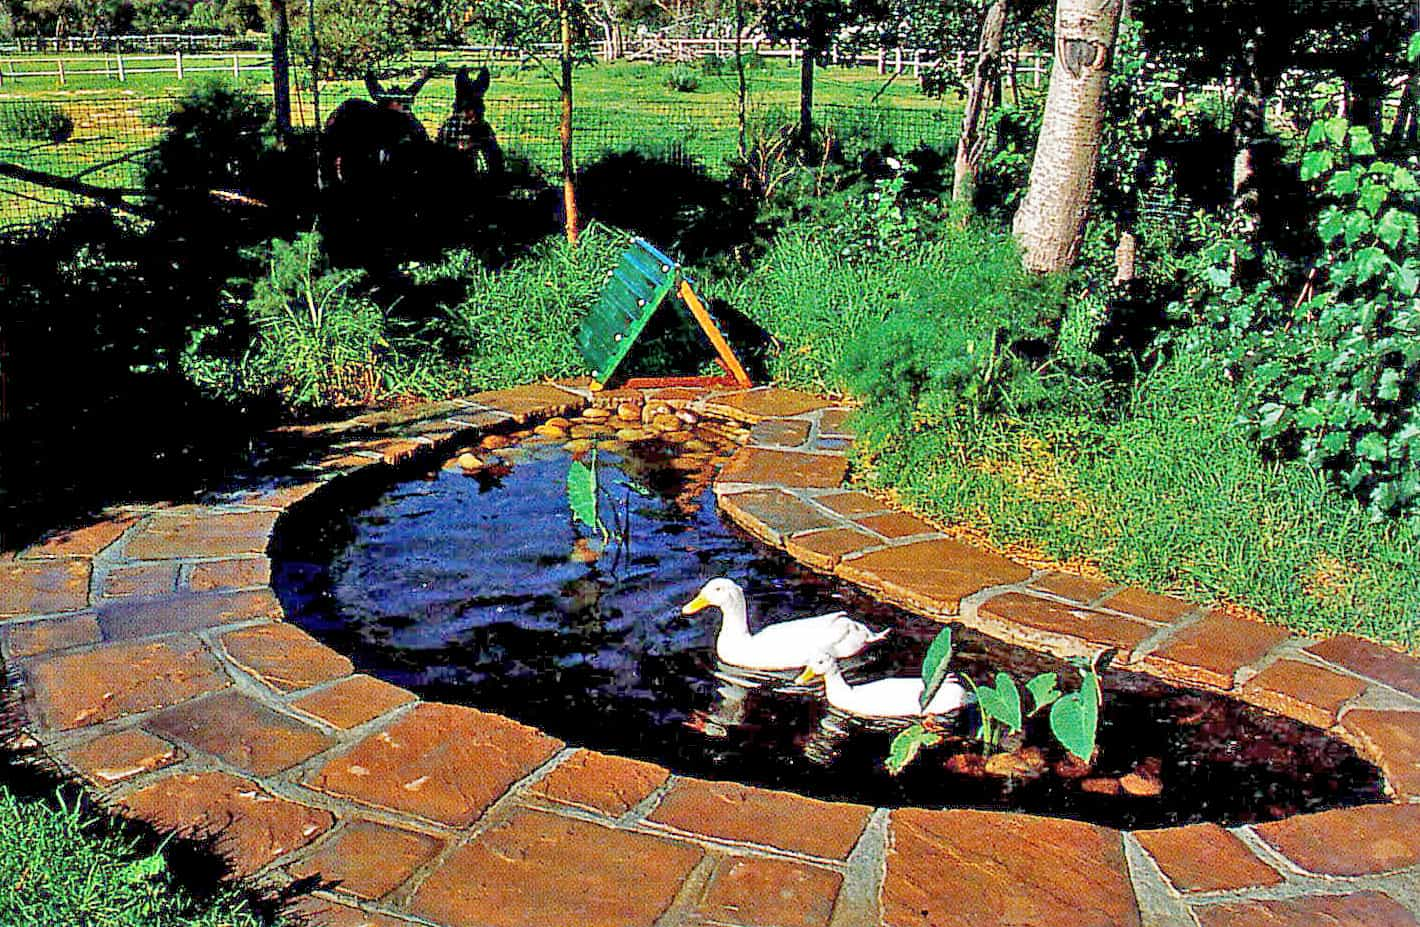 How to Build a Small Duck Pond - The Pond Professor